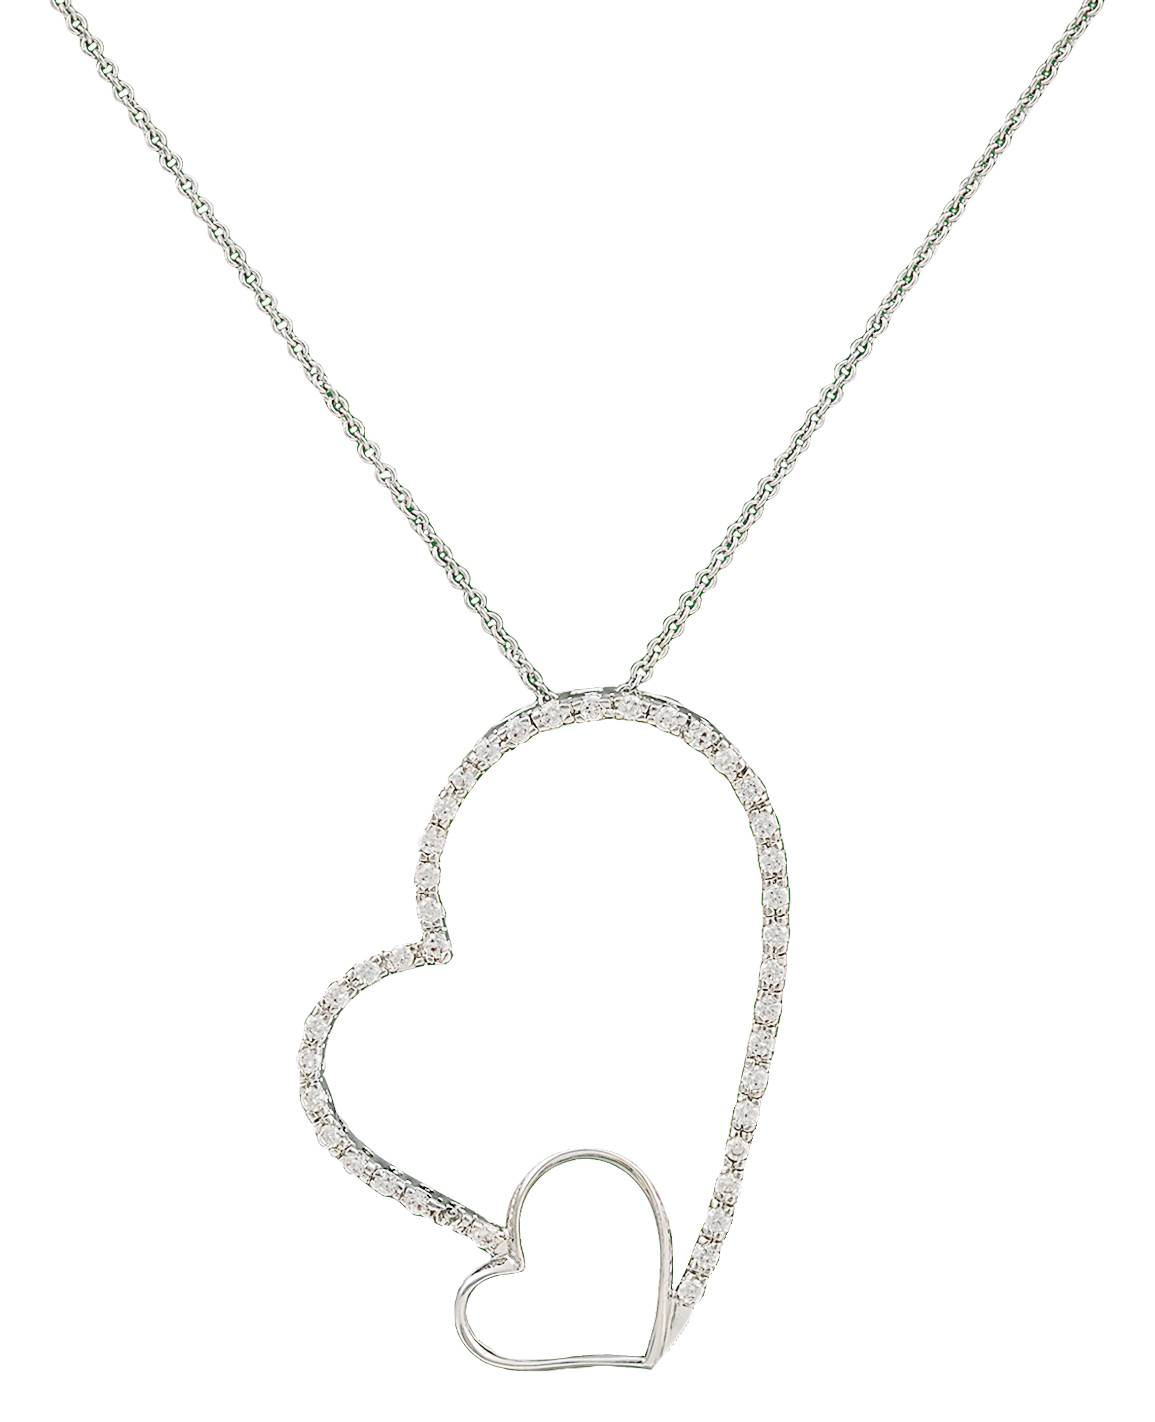 Montana Silversmiths Love Casts A Big Light Heart Necklace